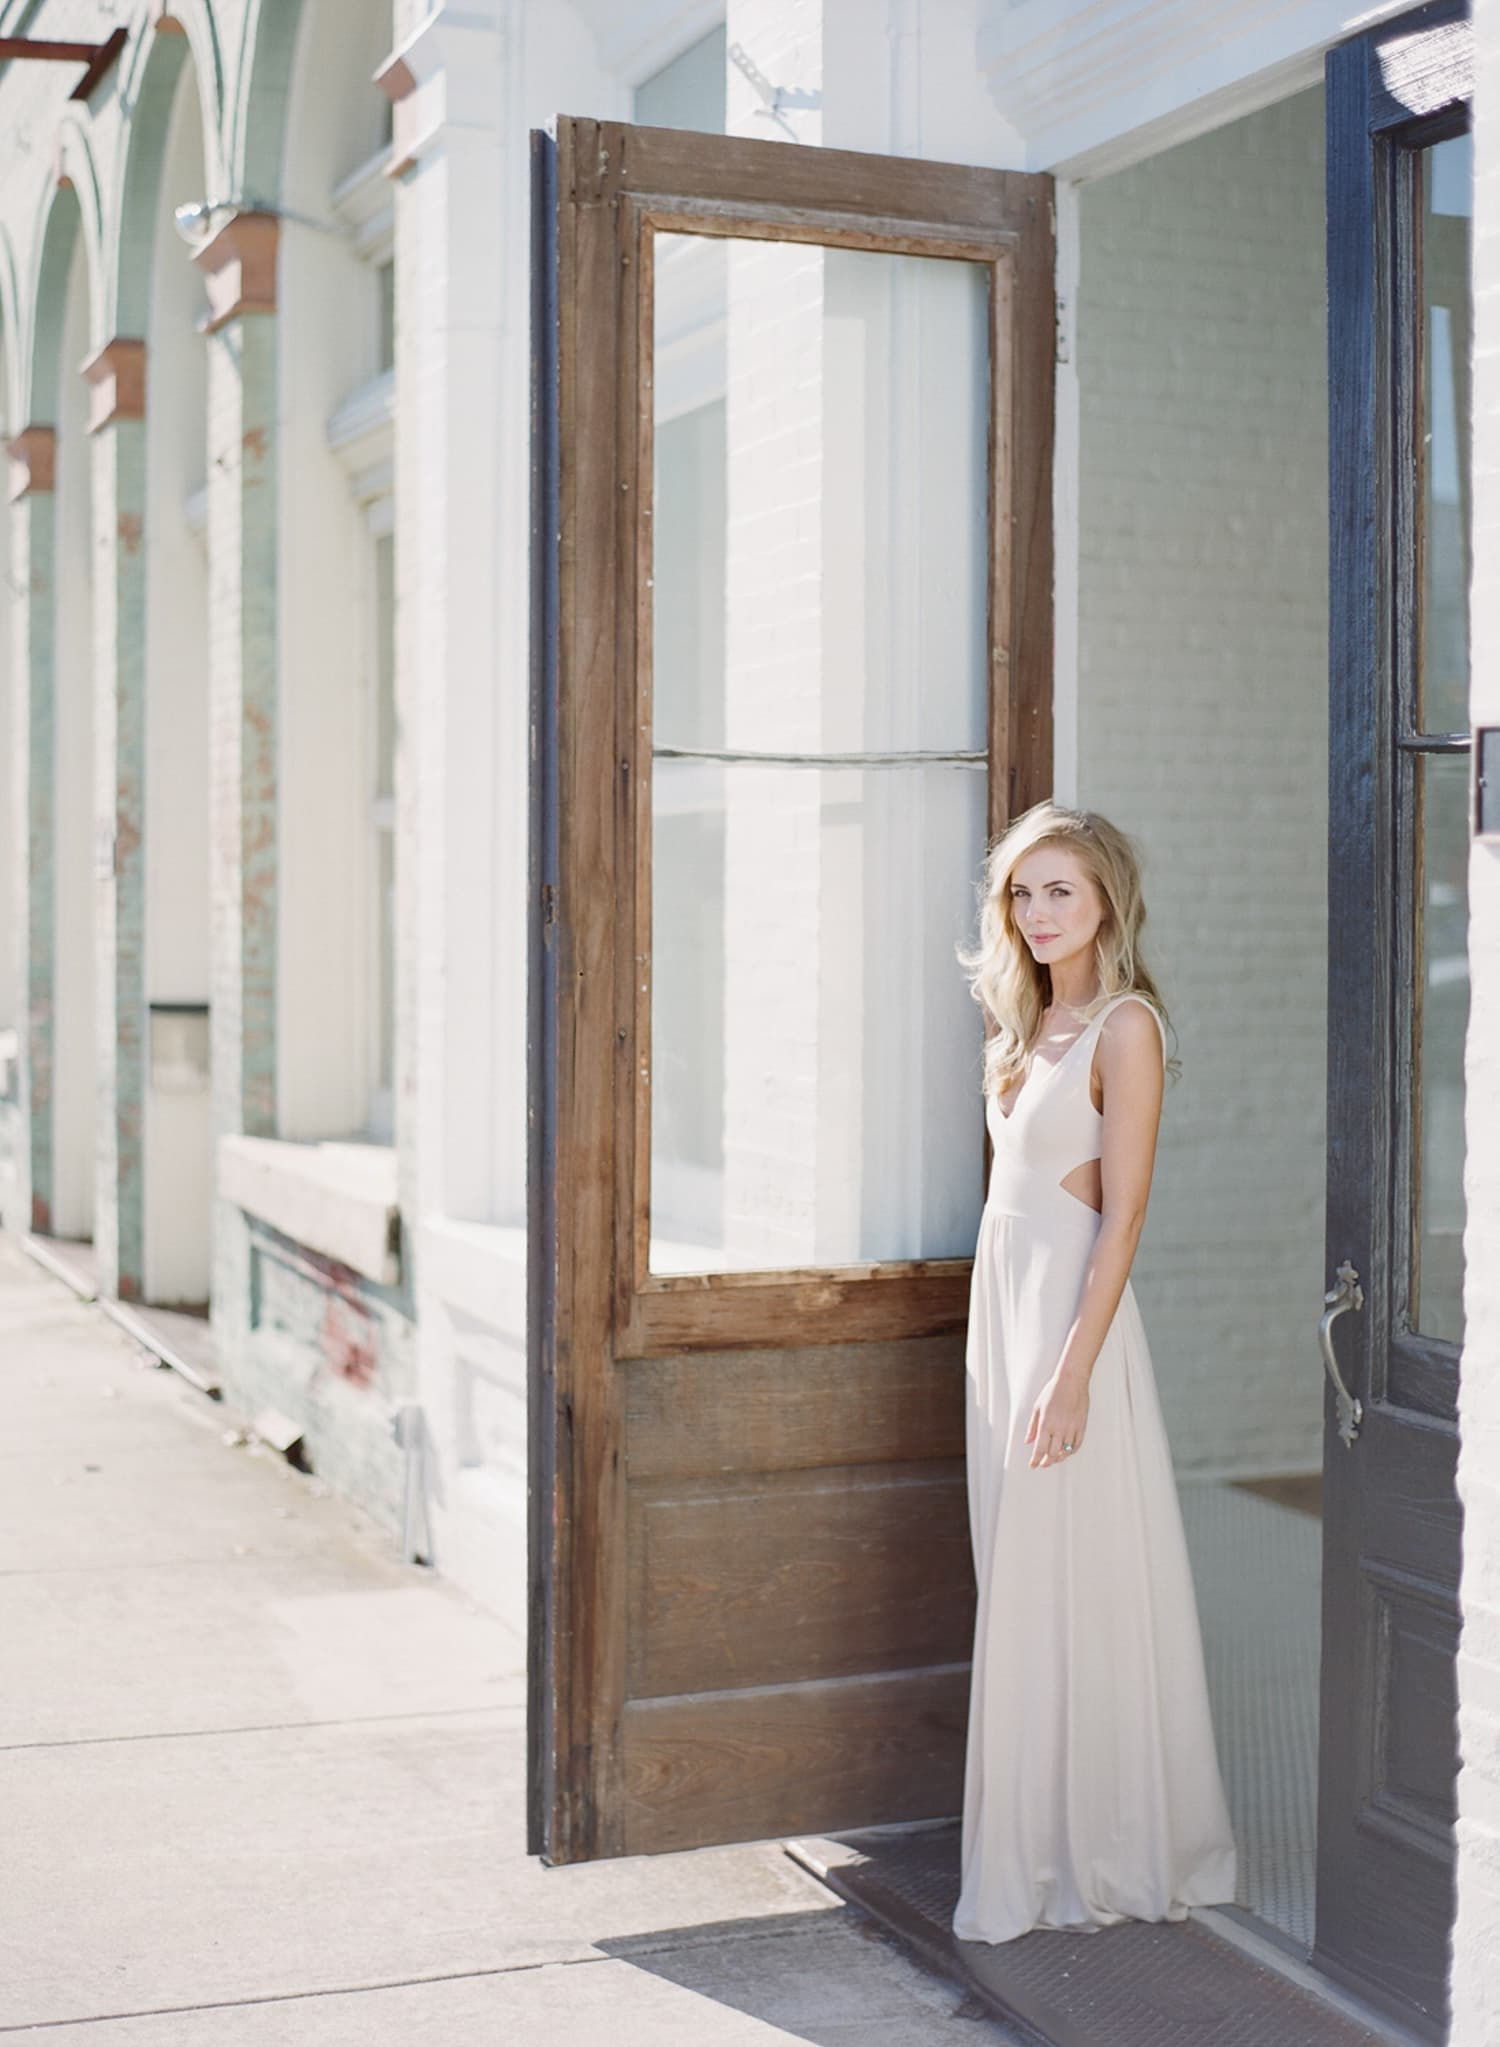 ONE_ELEVEN_EAST_MODERN_ENGAGEMENT_SHOOT_AUSTIN_TX_BY_MATTHEW_MOORE_PHOTOGRAPHY_00053.jpg